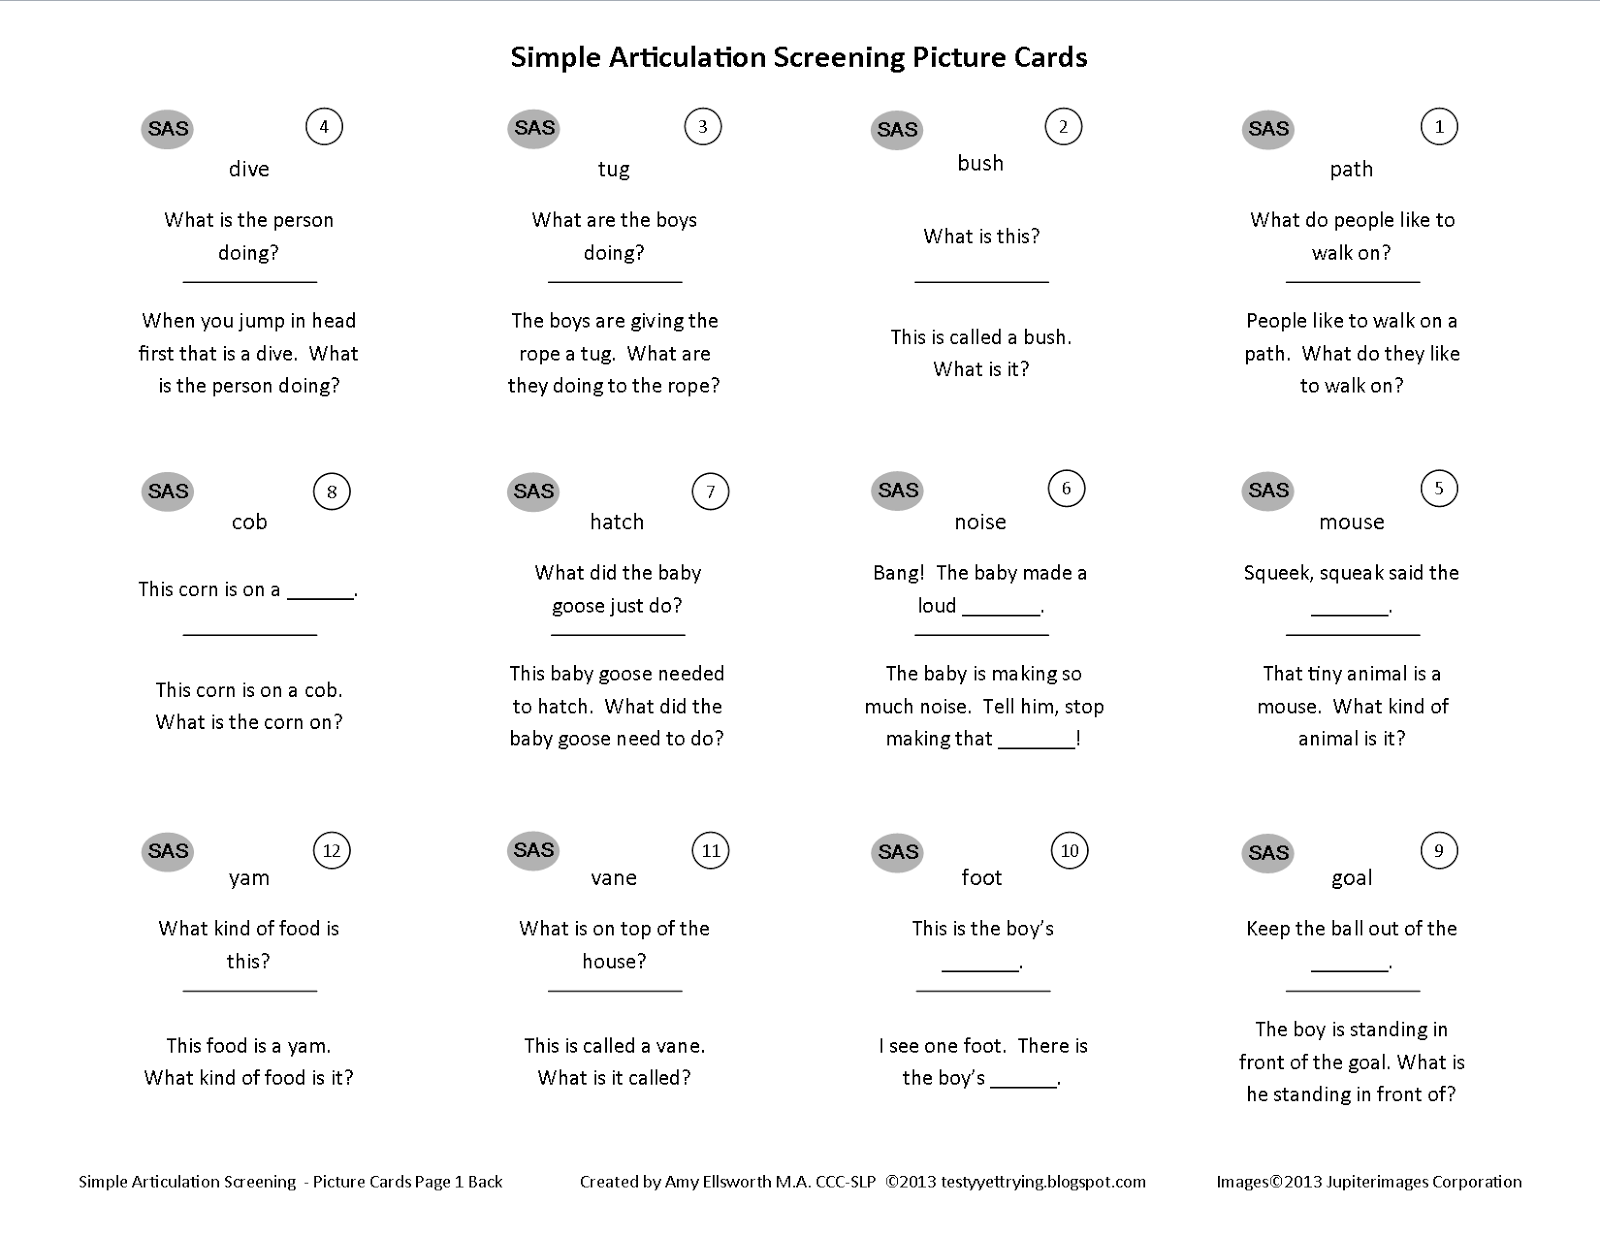 Testy Yet Trying Free Simple Articulation Screening Tool